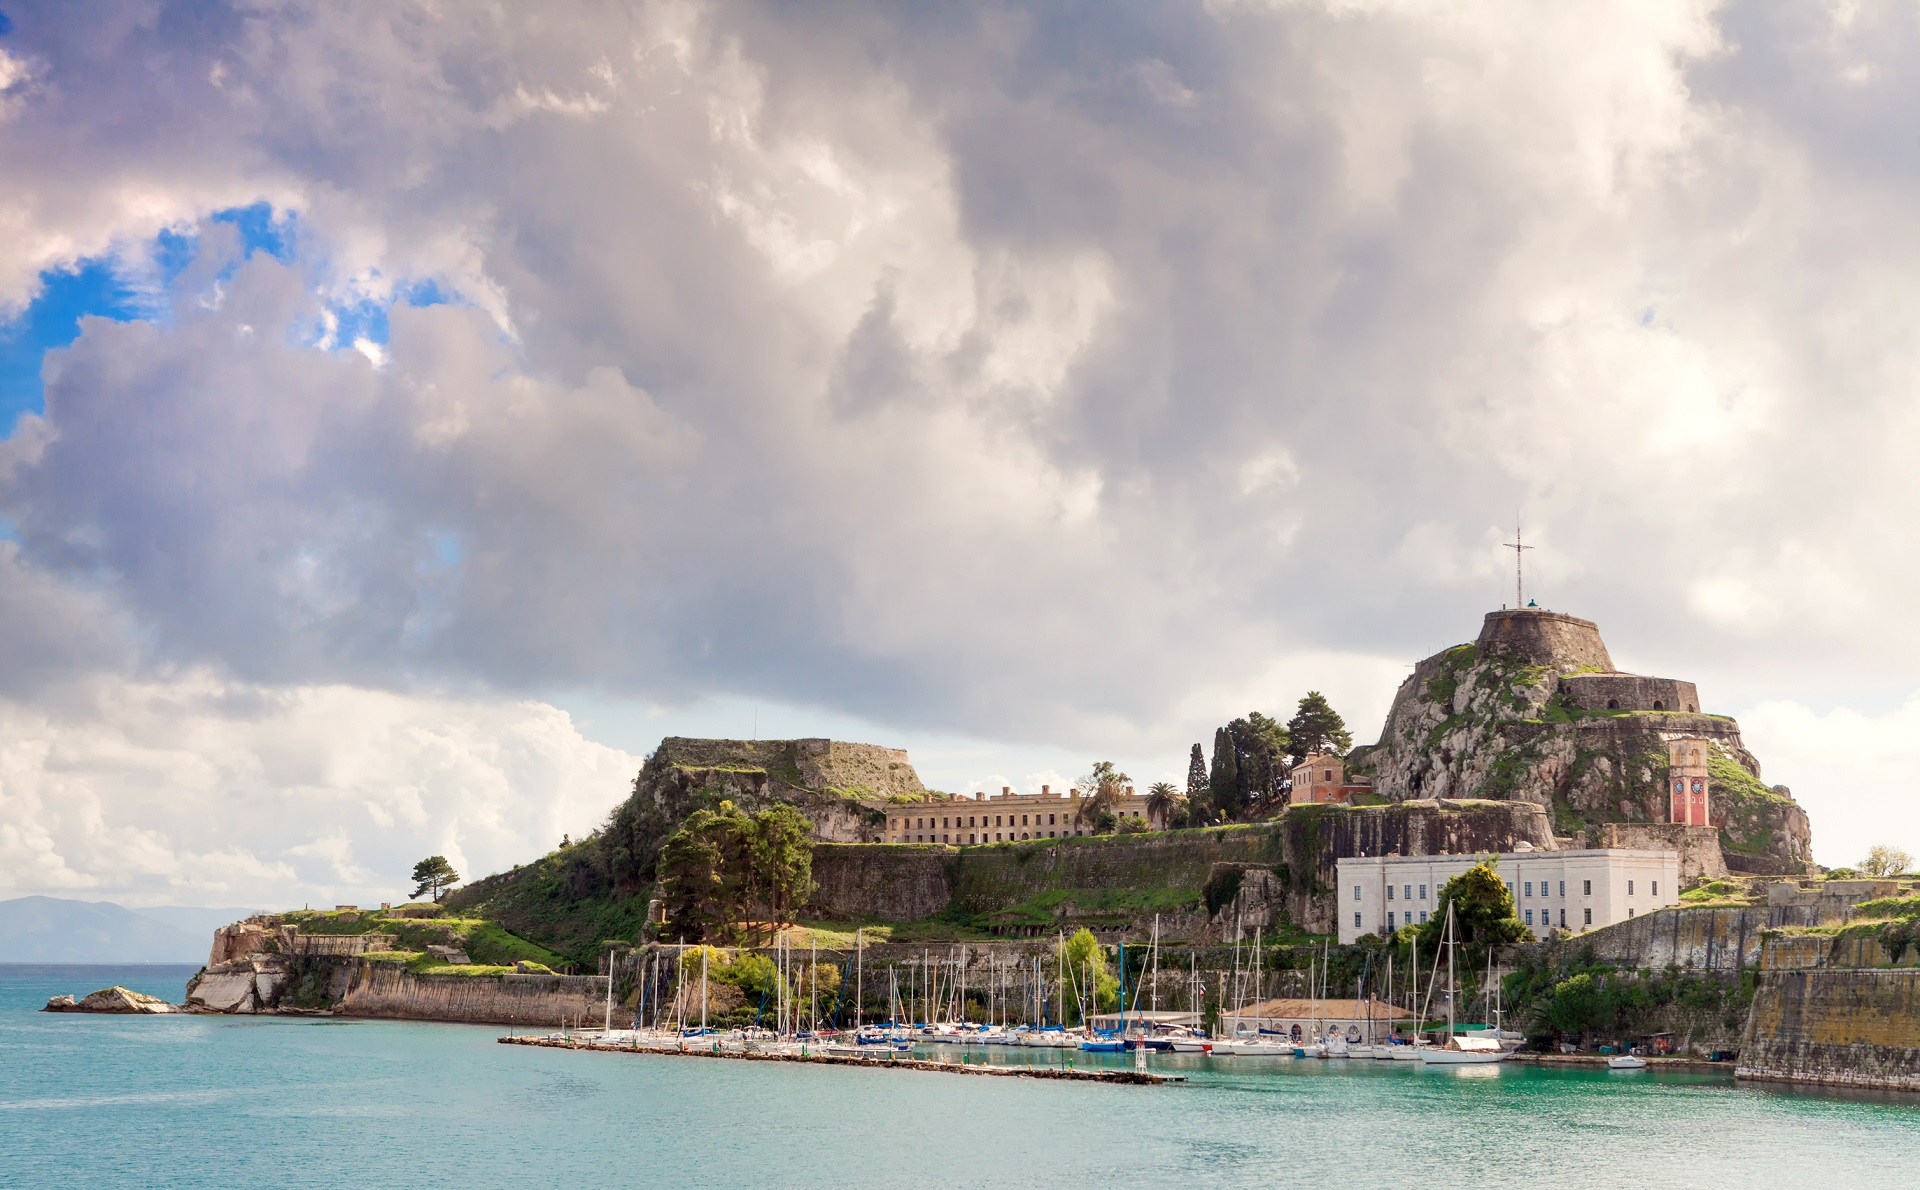 Corfu Old Town Fortress